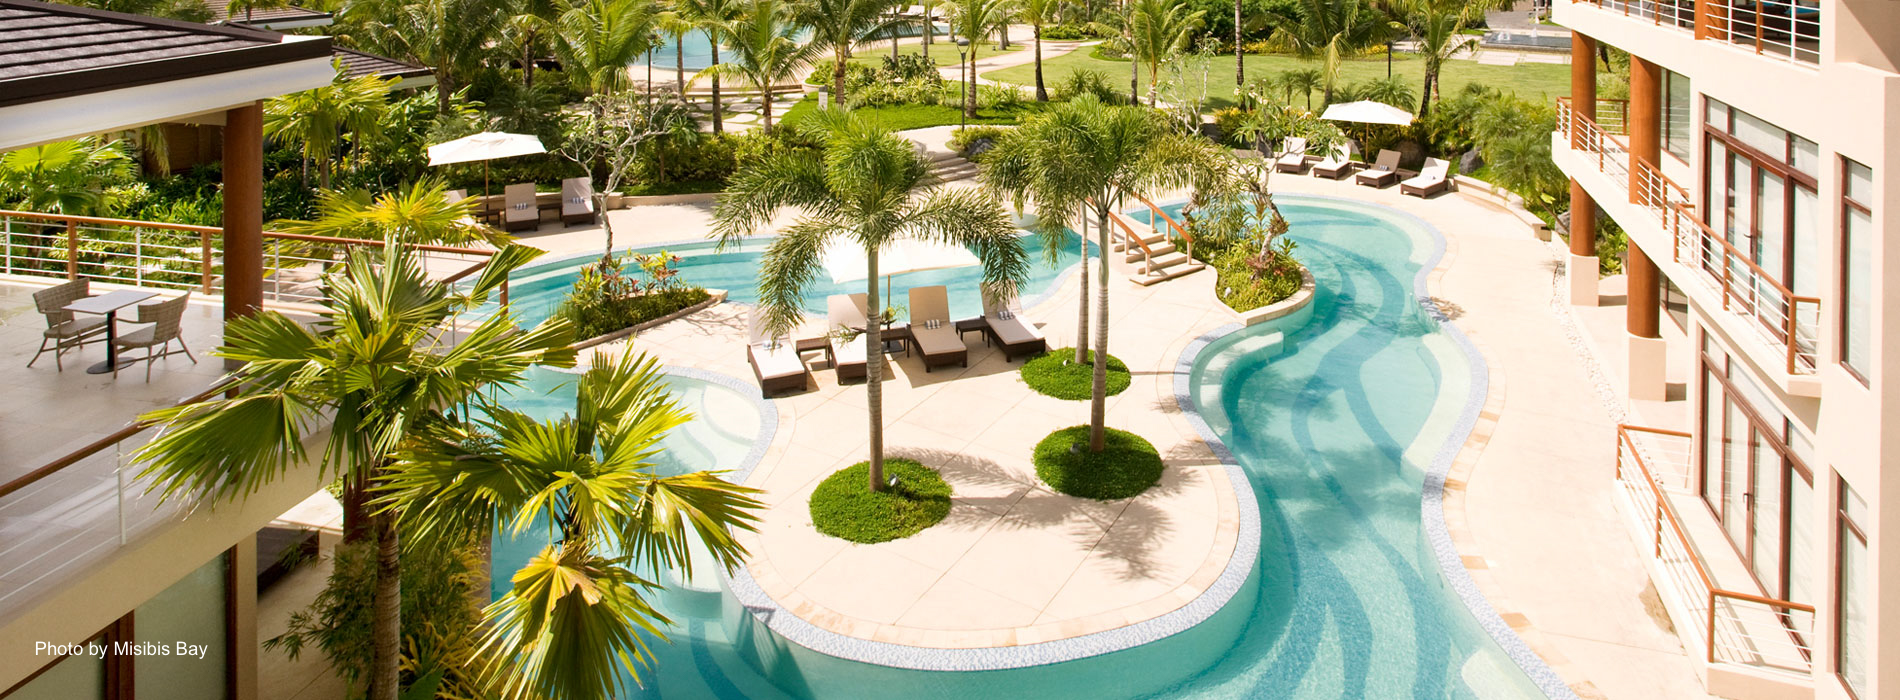 Enjoy the world-class facilities of Misibis Bay for relaxation like their popular swimming pool